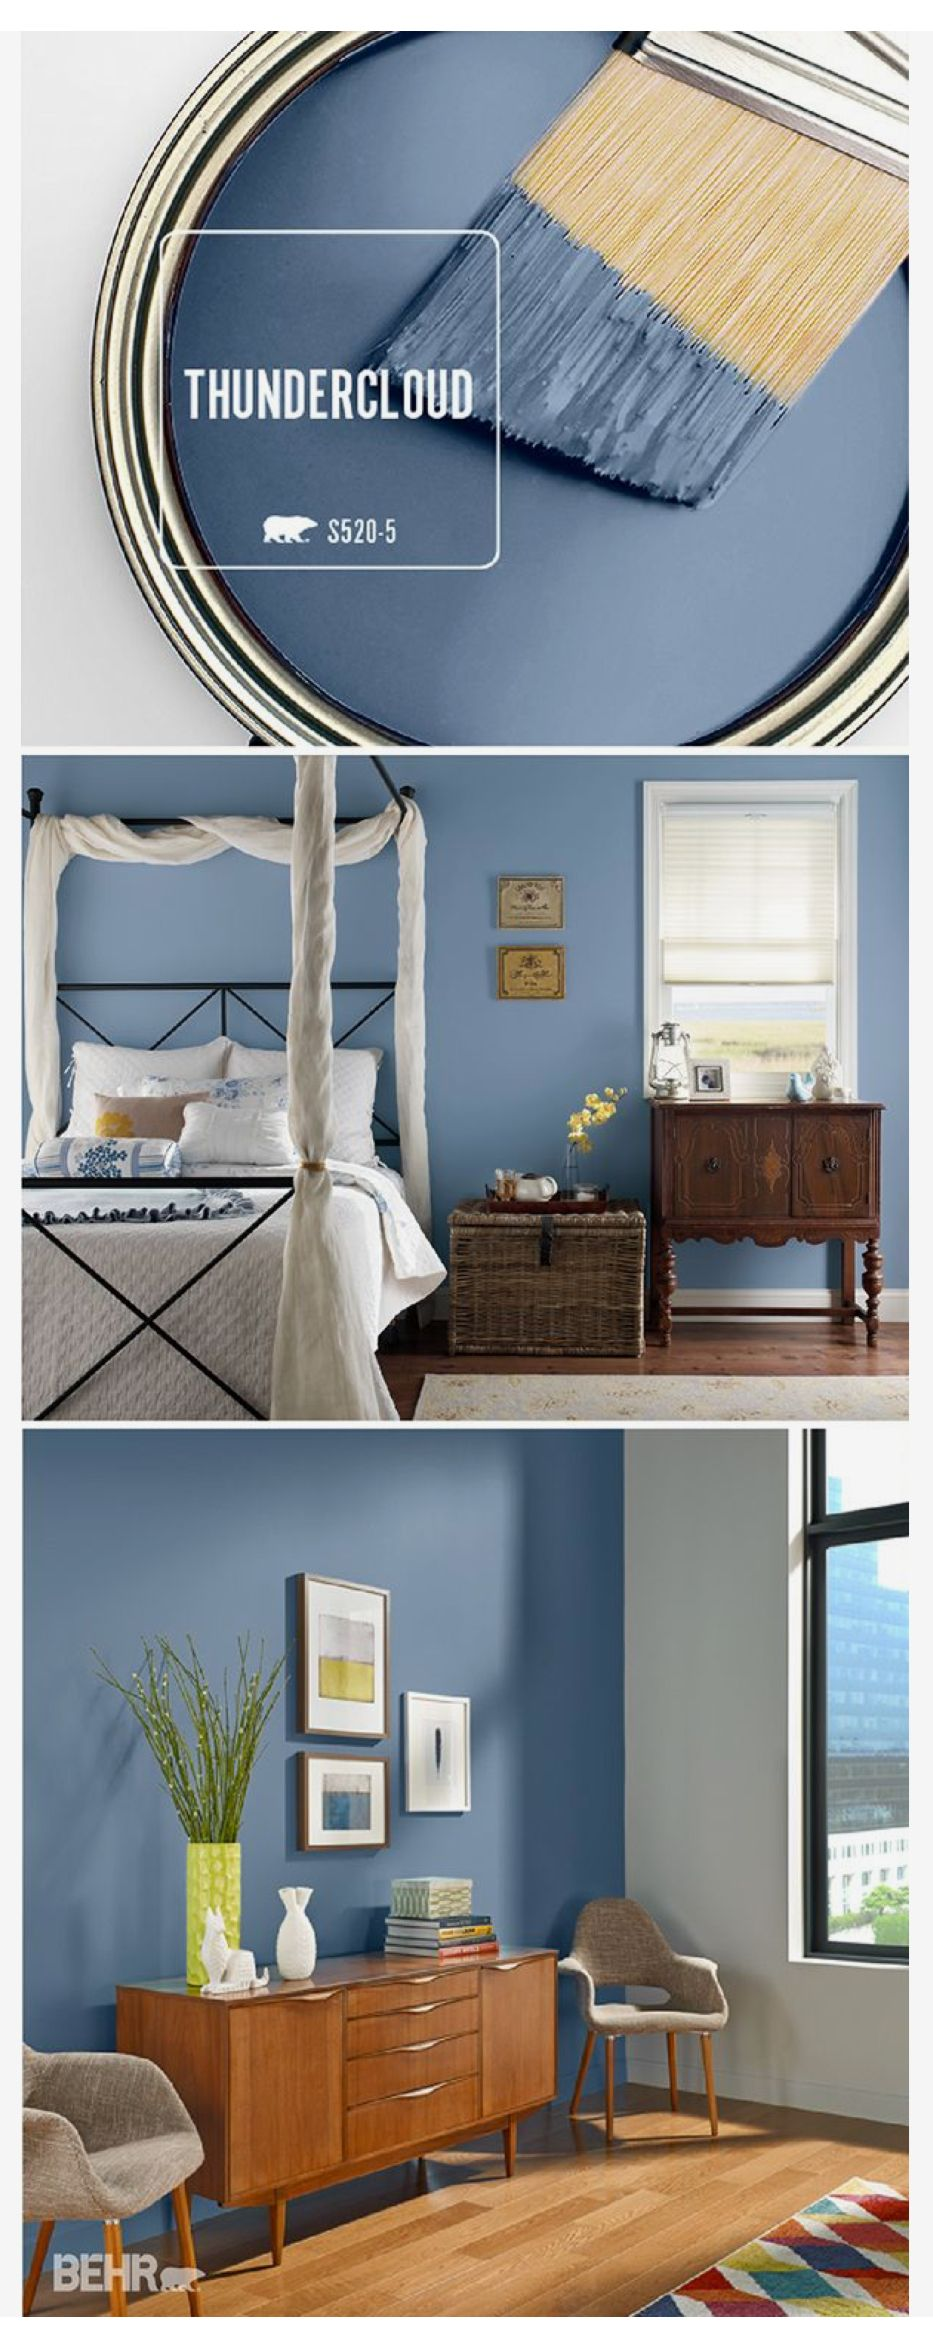 Made With Aviary Http Avry Co Getaviary Room Colors Home Bedroom Home Decor